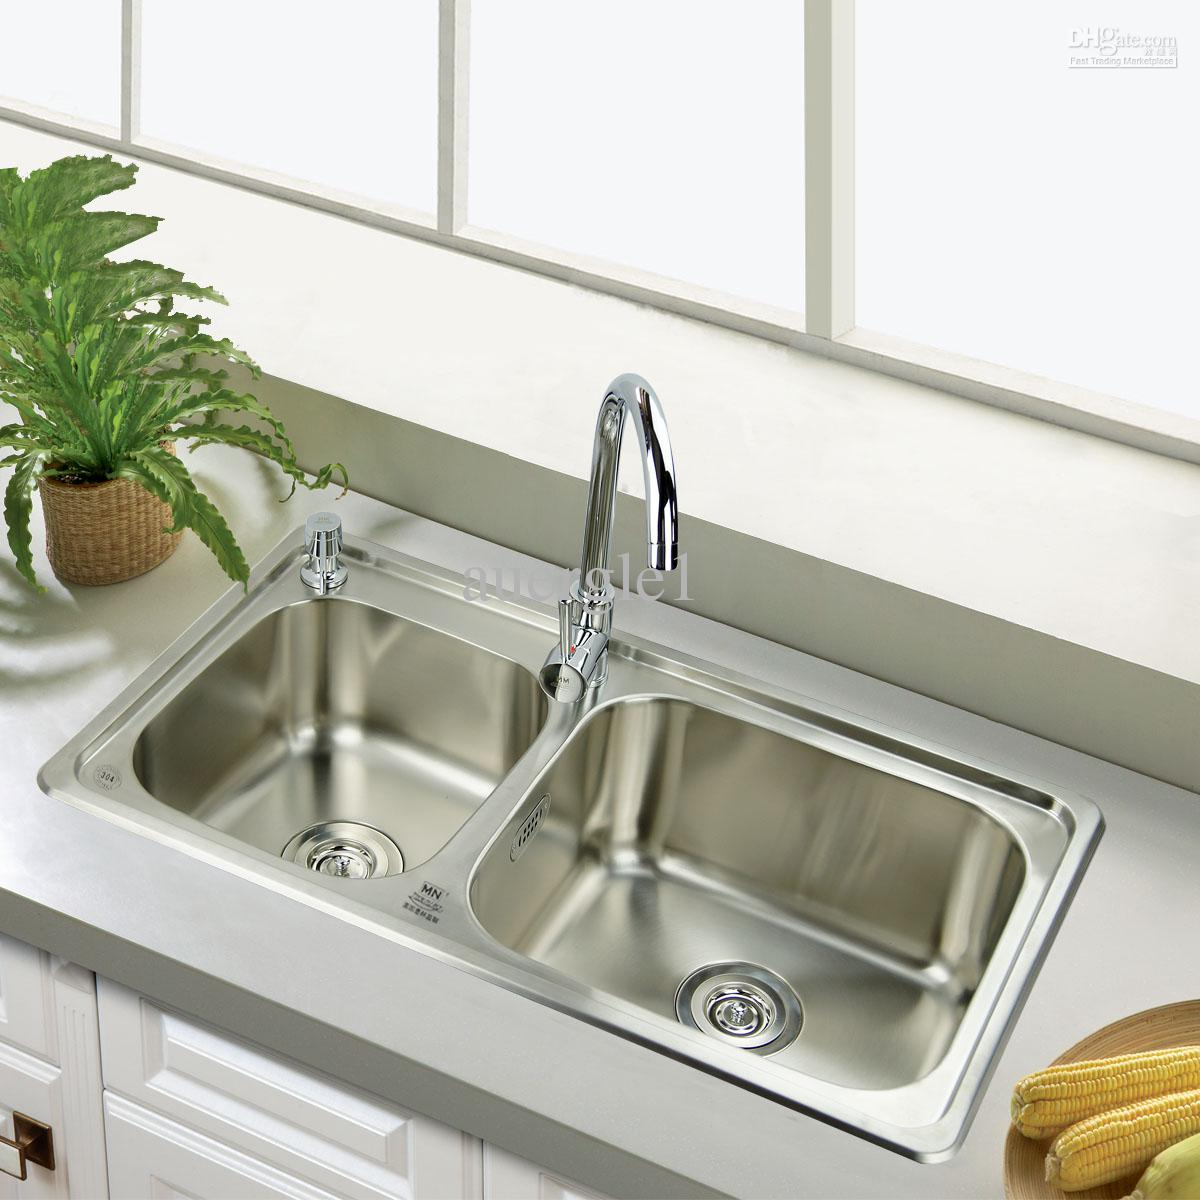 Sink Stainless Steel Slot Merlin